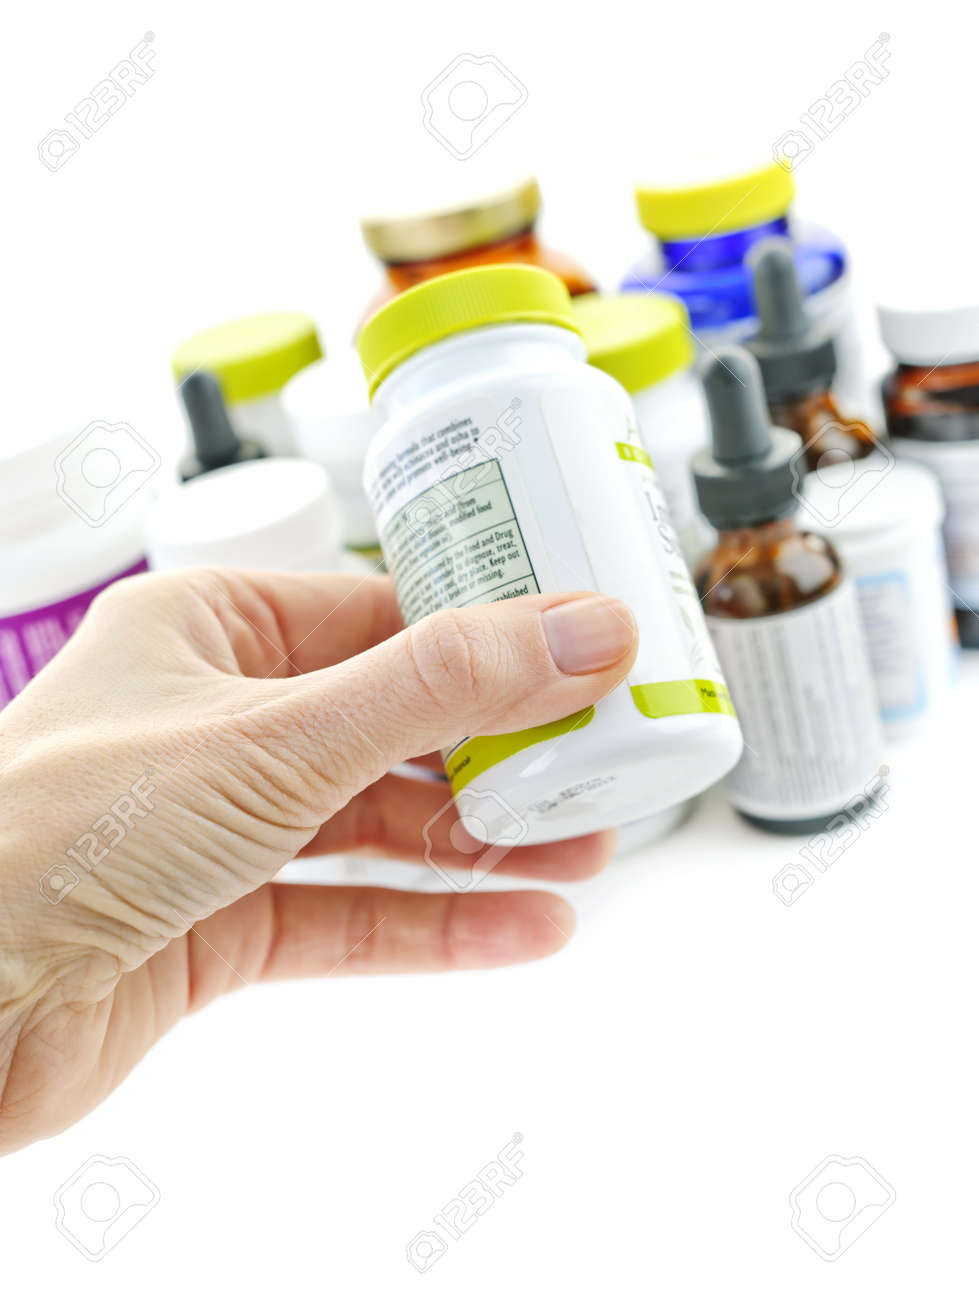 Hand holding medicine bottle to read label Stock Photo - 9431871